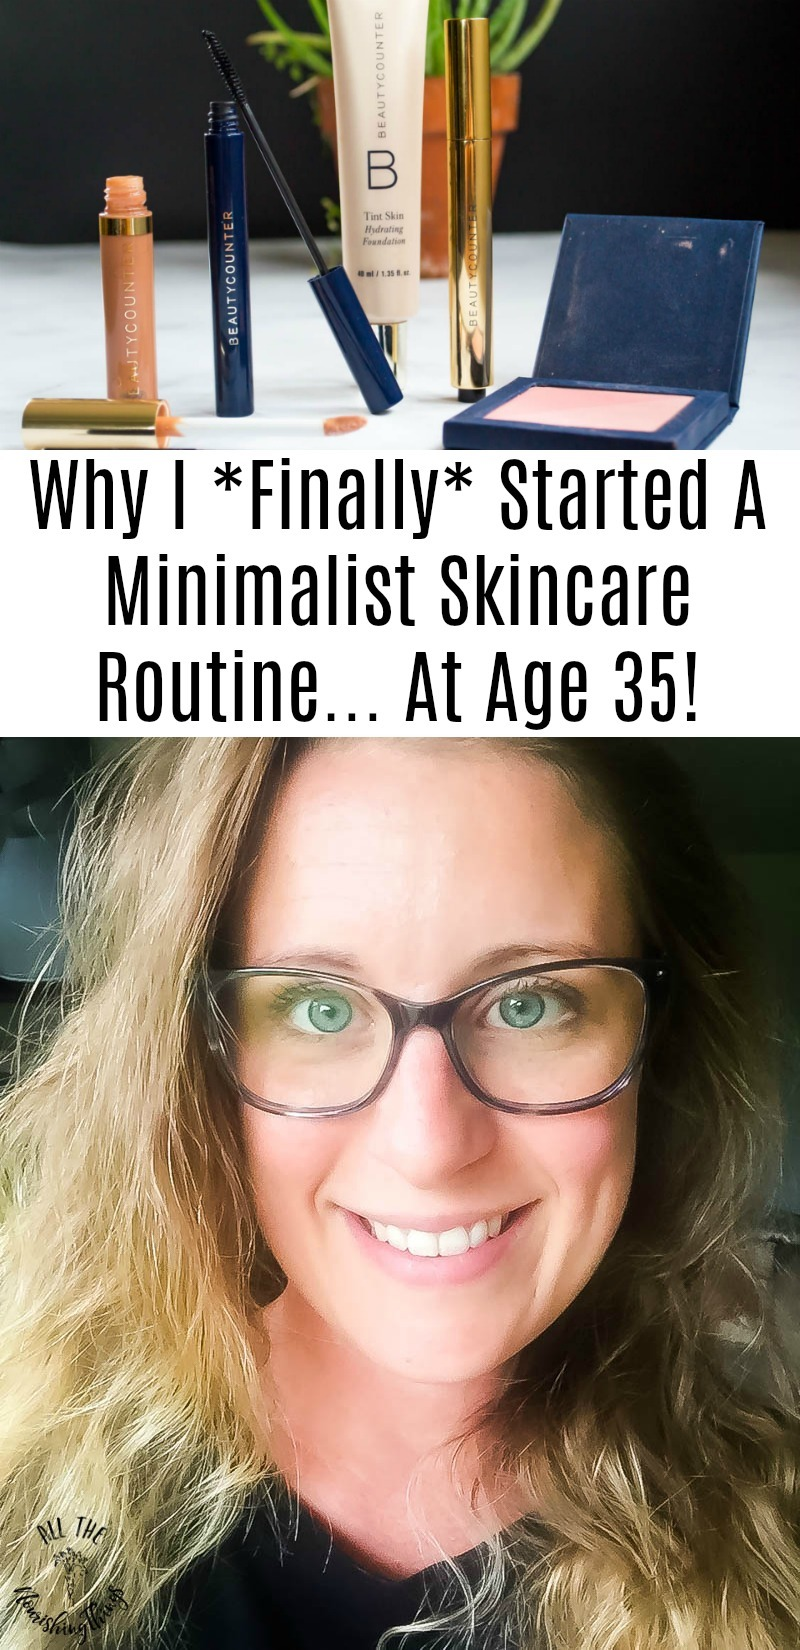 why I finally started a minimalist skincare routine at age 35 with text overlay